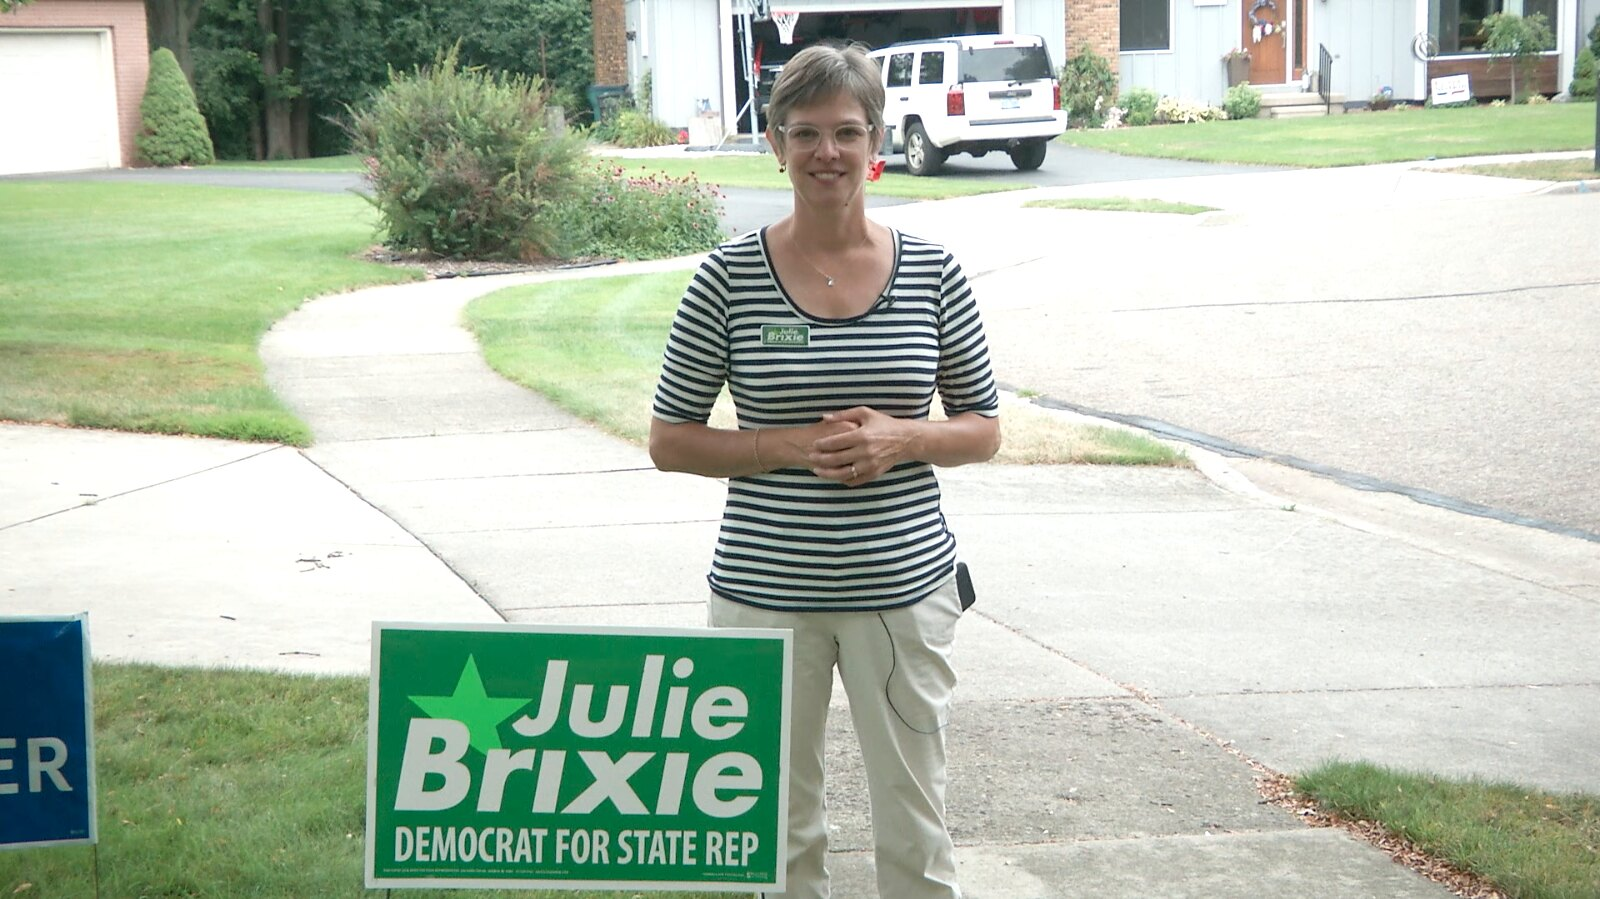 On the Campaign Trail: Julie Brixie 69th State Rep. Candidate (D)